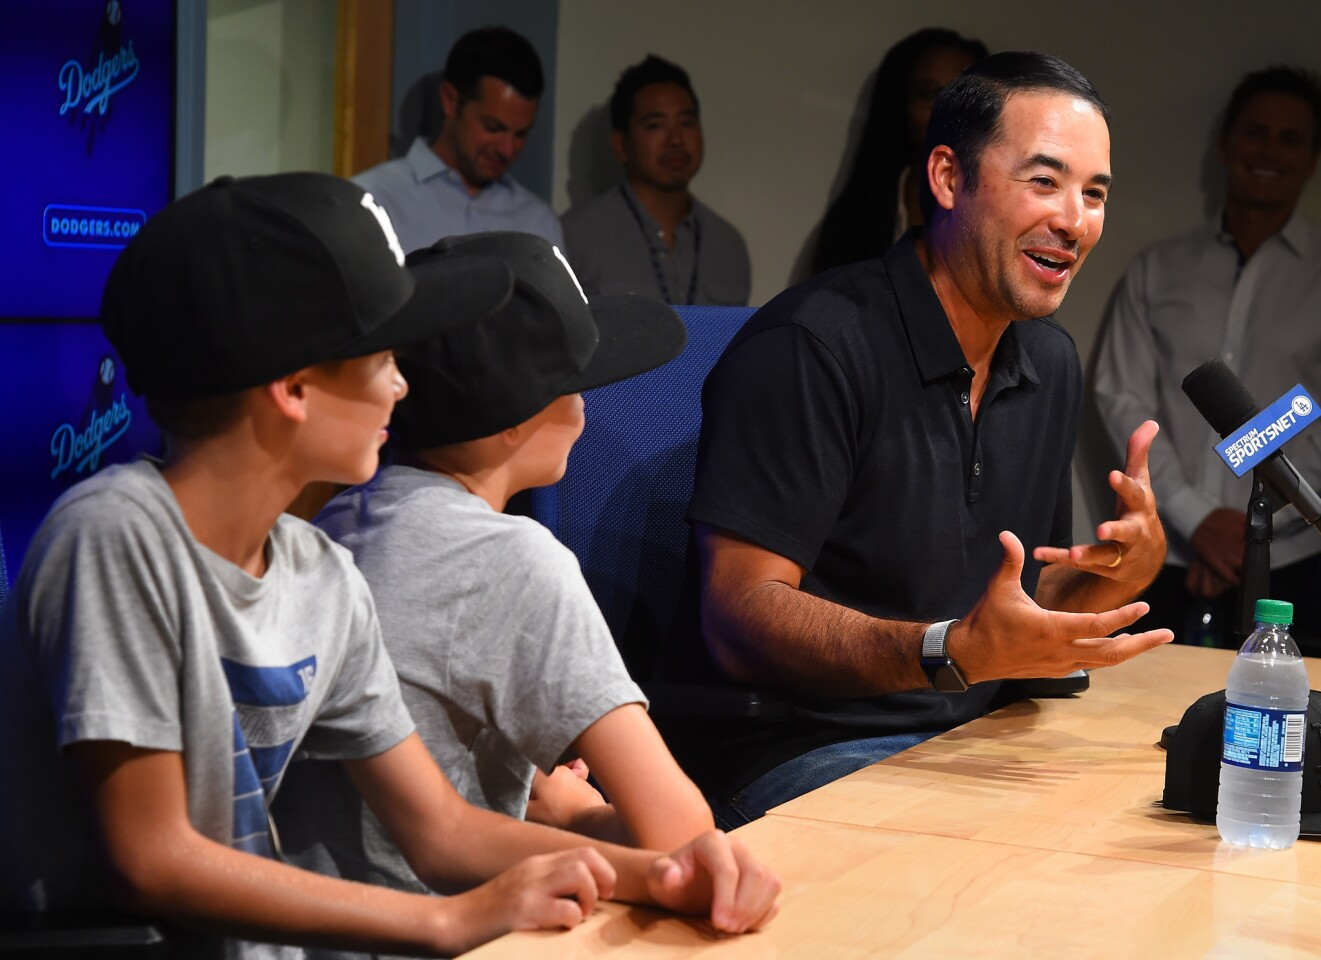 LOS ANGELES, CA - AUGUST 03: Former MLB player Andre Either answers questions from the media about his retirement as his sons Retton, 8 and Dreson, 10 look on before the game between the Los Angeles Dodgers and the Houston Astros at Dodger Stadium on August 3, 2018 in Los Angeles, California. (Photo by Jayne Kamin-Oncea/Getty Images) ** OUTS - ELSENT, FPG, CM - OUTS * NM, PH, VA if sourced by CT, LA or MoD **